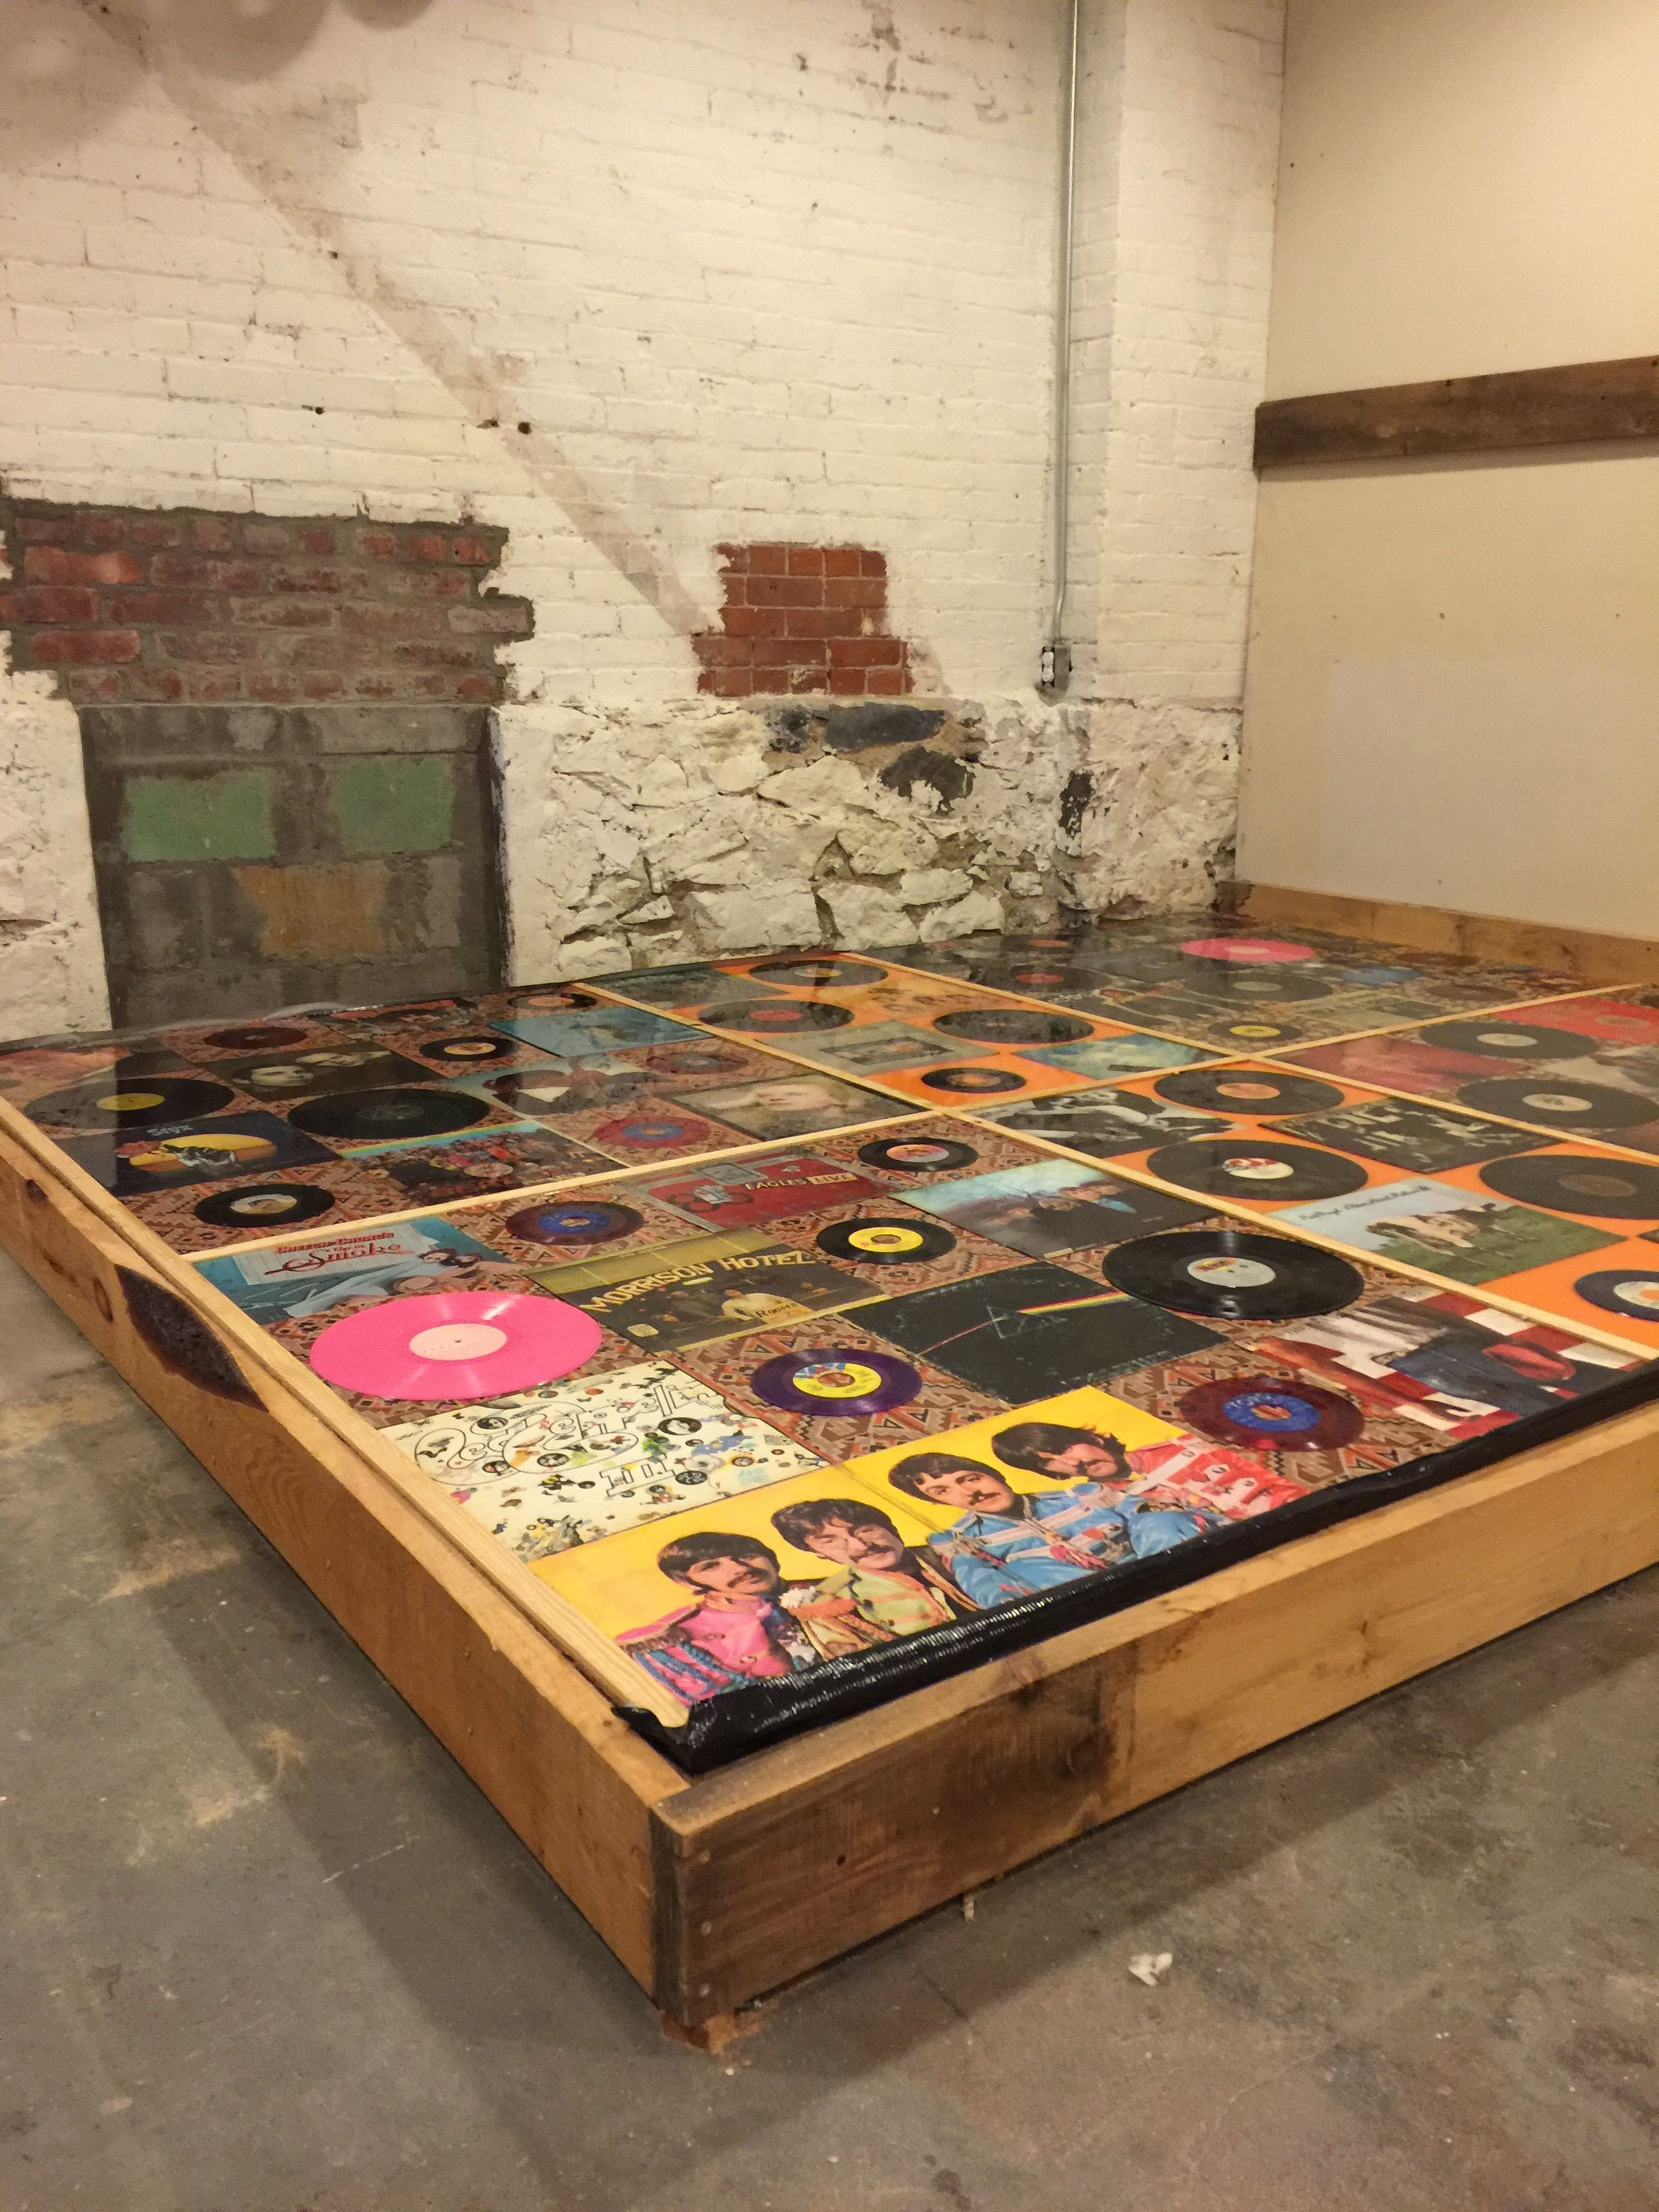 Diy Epoxy Recordvinyl Floor #Recordfloor #Diyrecordfloor #Renovations